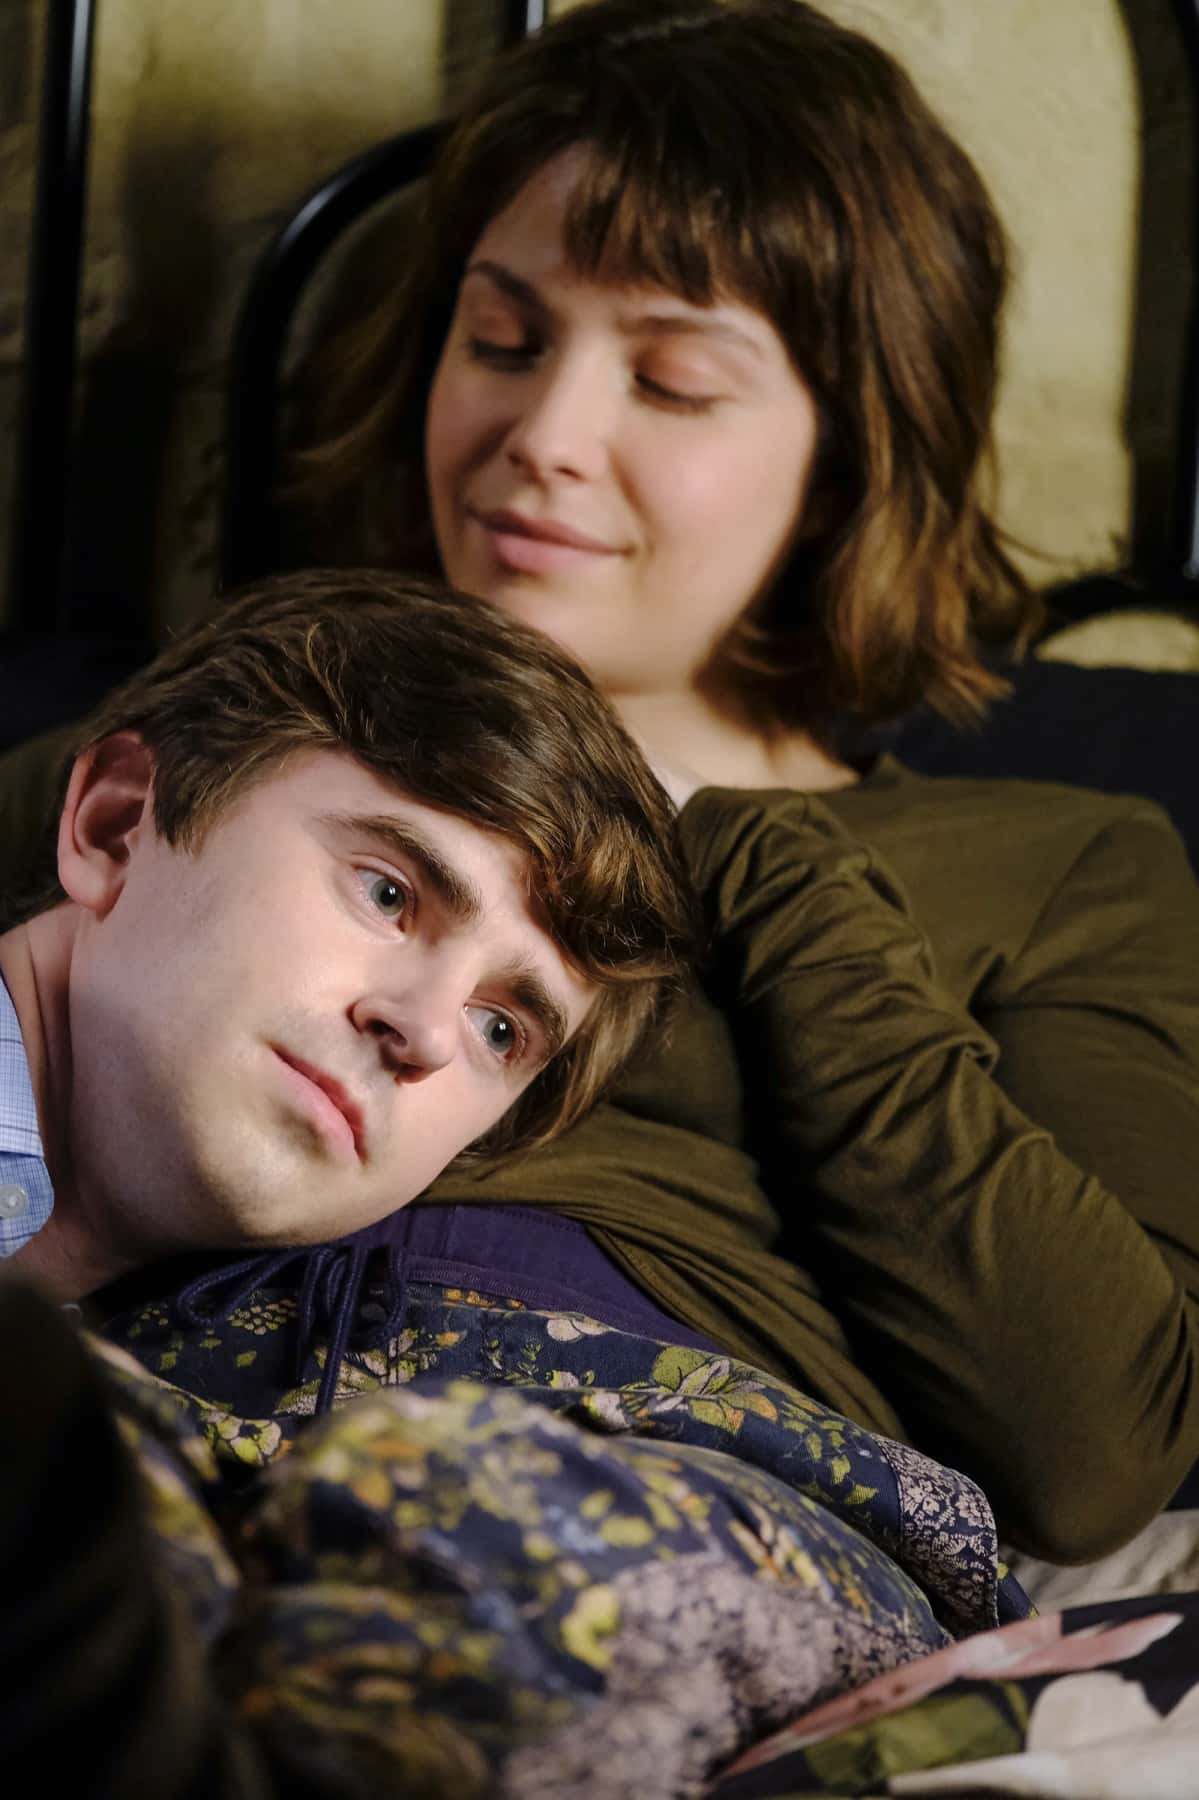 "THE GOOD DOCTOR Season 4 Episode 13 - ""Spilled Milk"" – Claire is blindsided when her absentee father shows up at her door. Meanwhile, Shaun feels disconnected from Lea, causing tension in their relationship on an all-new episode of ""The Good Doctor,"" MONDAY, MARCH 29 (10:00-11:00 p.m. EDT), on ABC. (ABC/Jeff Weddell) FREDDIE HIGHMORE"